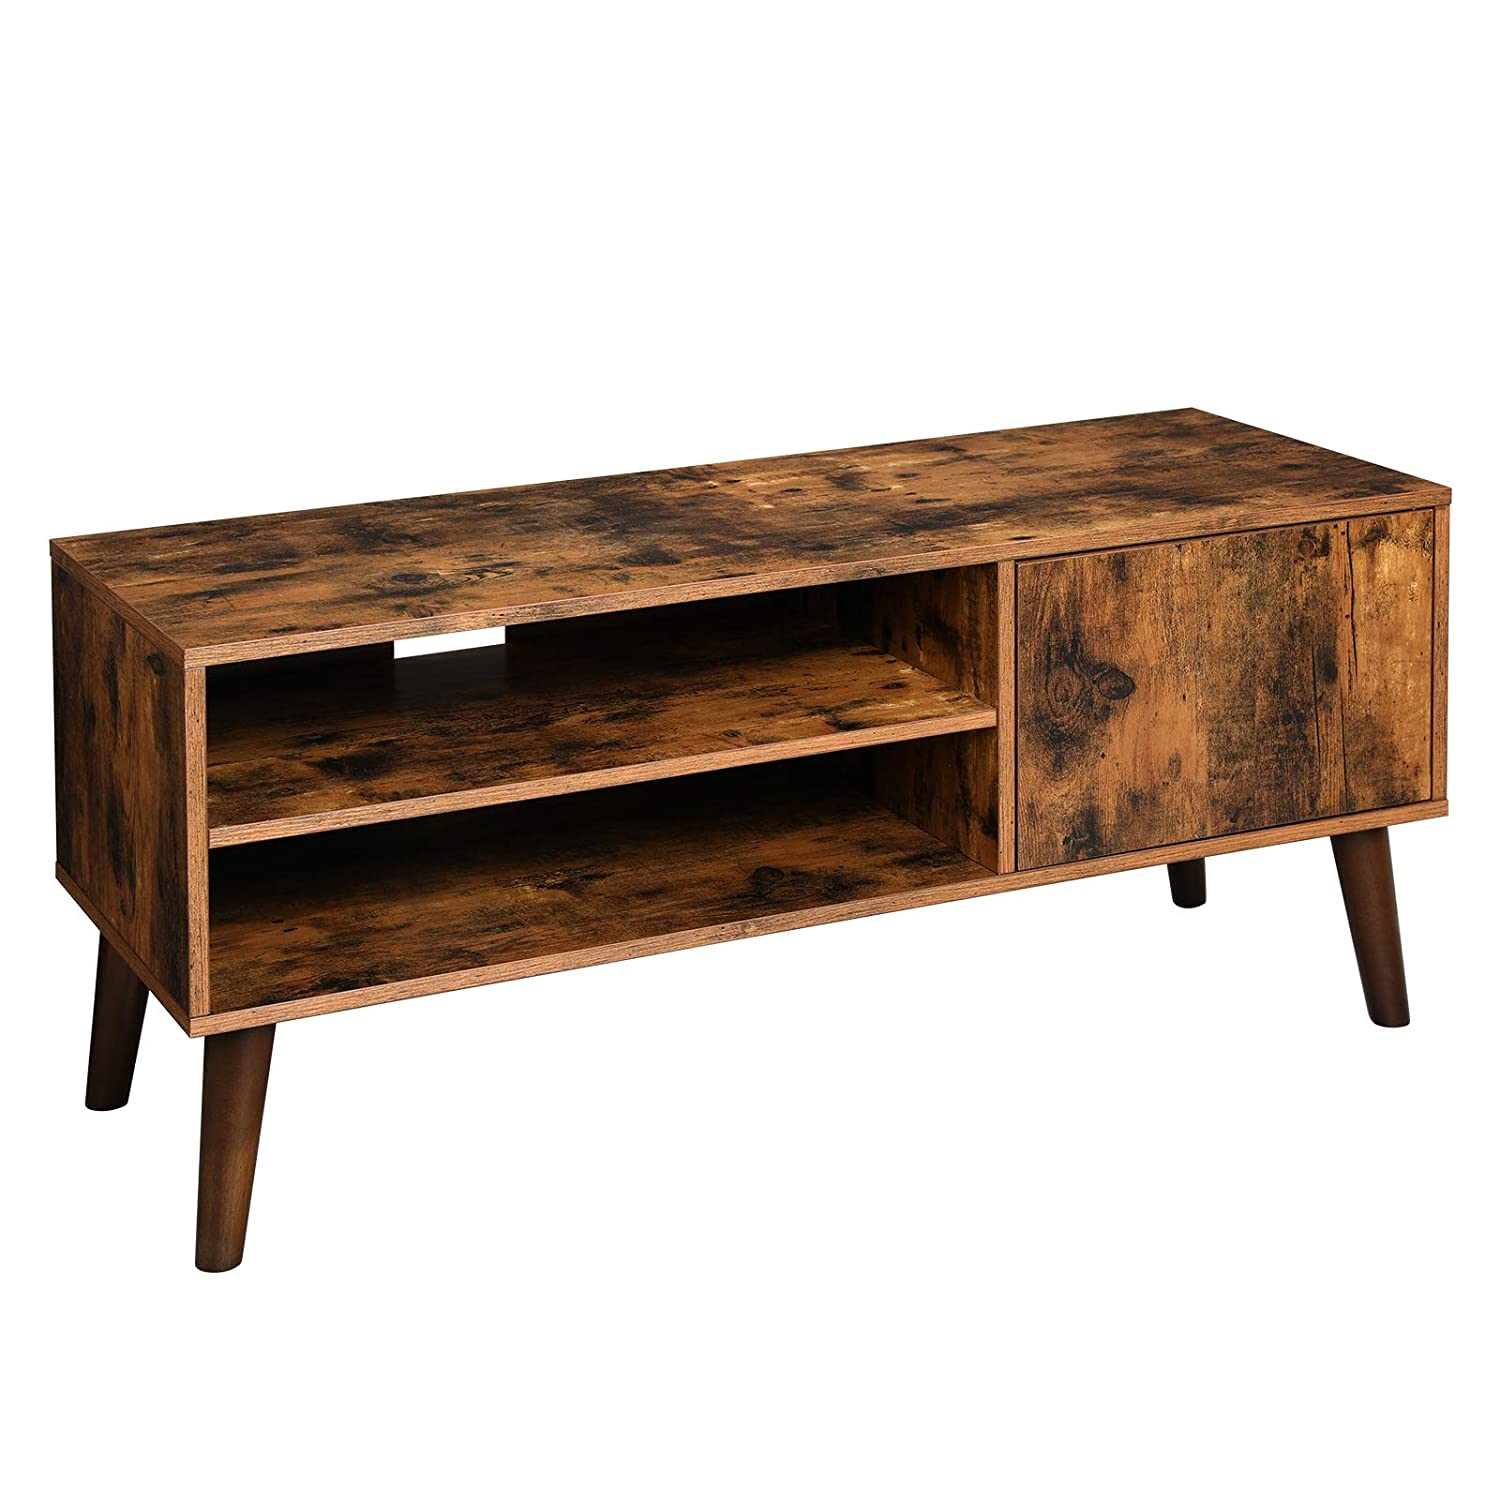 buy online 25e27 2b887 VASAGLE Retro TV Stand, TV Console, Mid-Century Modern Entertainment Center  for Flat Screen TV Cable Box Gaming Consoles, in Living Room Entertainment  ...